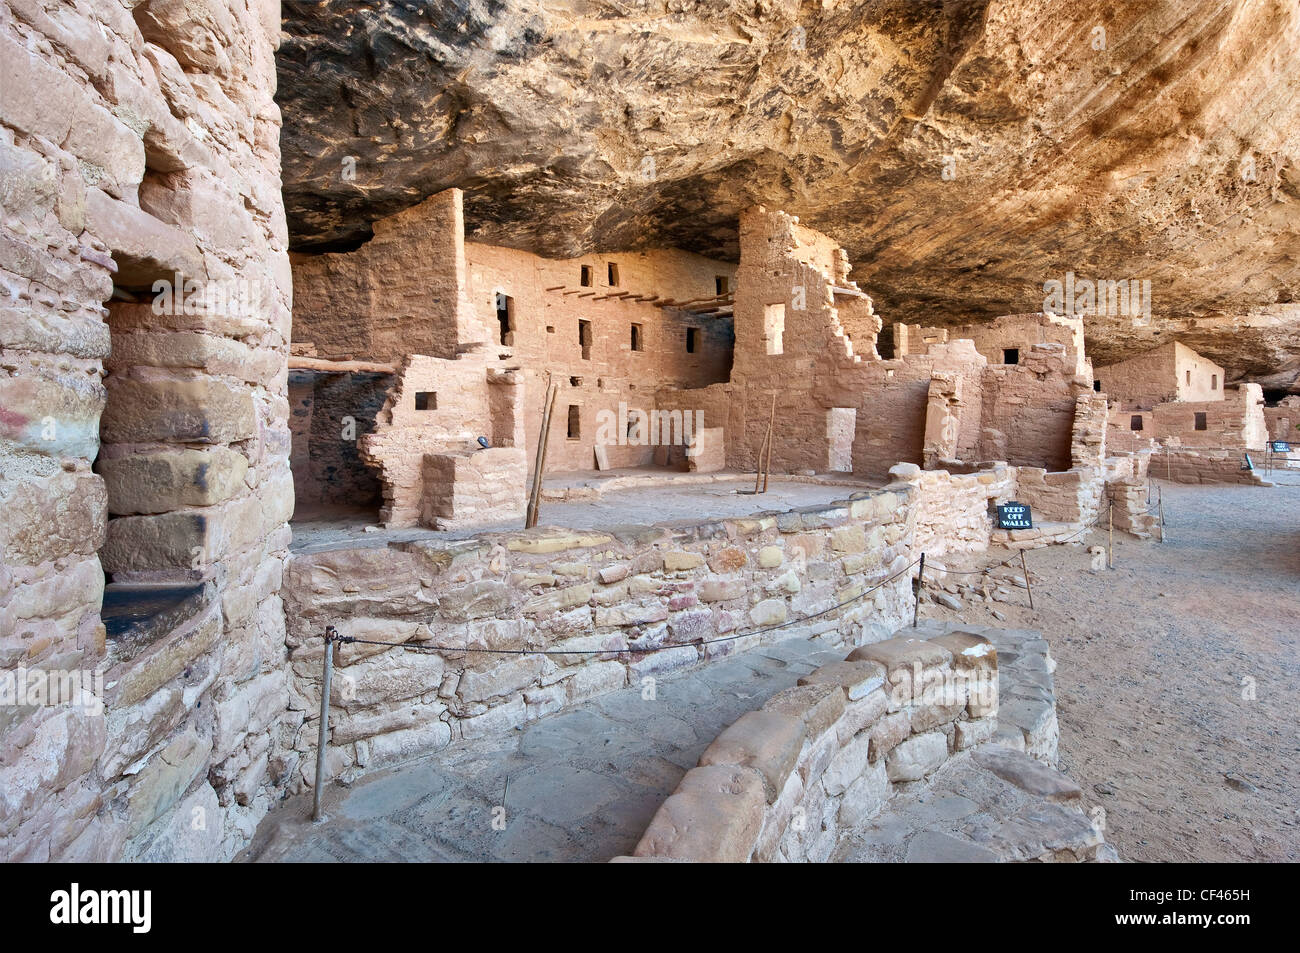 Spruce Tree House ruins in alcove at Chaplin Mesa in Mesa Verde National Park, Colorado, USA - Stock Image